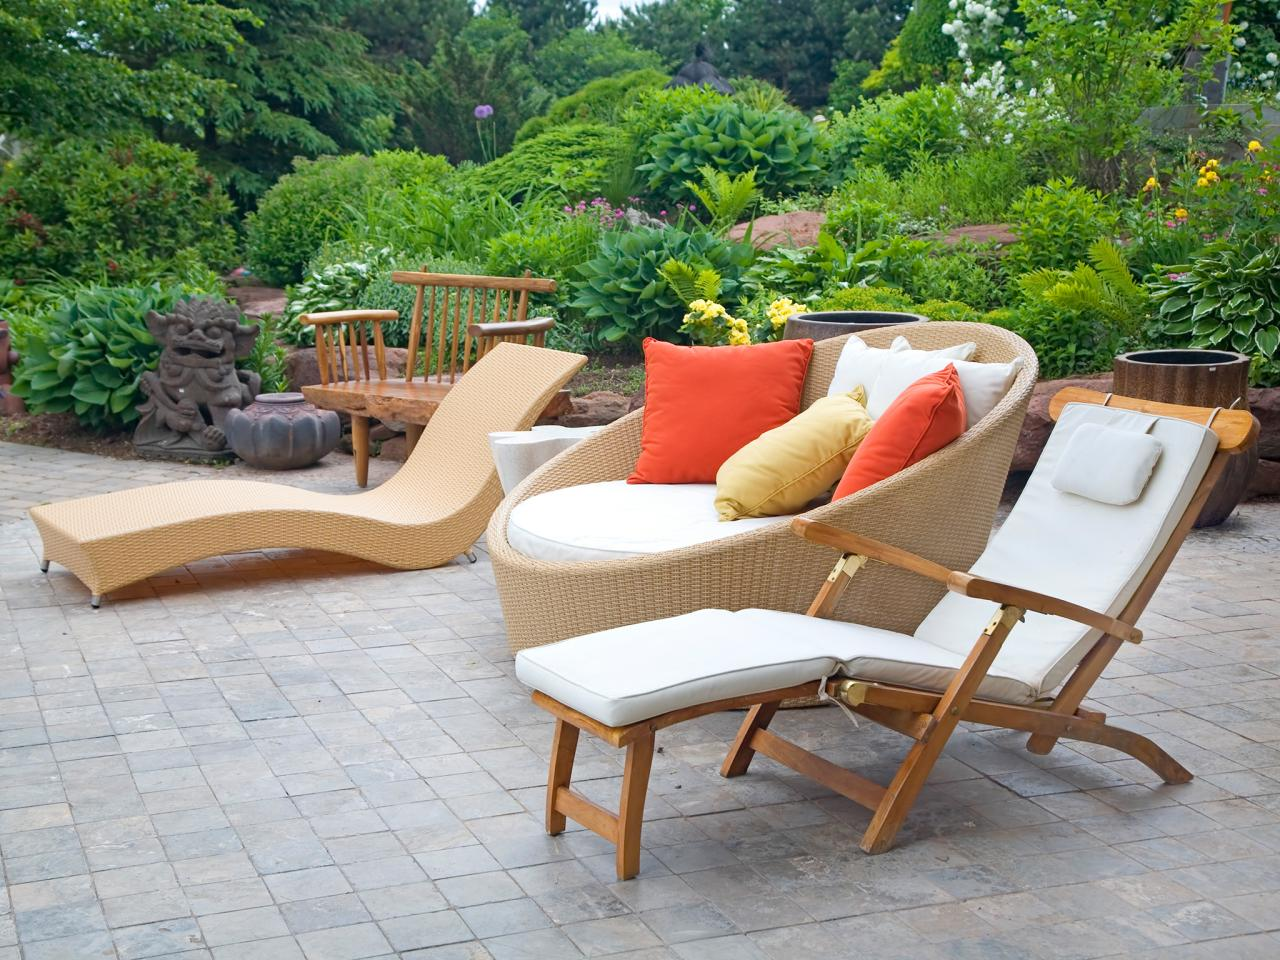 d022f926e9a5 Contemporary Garden Furniture Offers Modern Outlook to the Garden ...